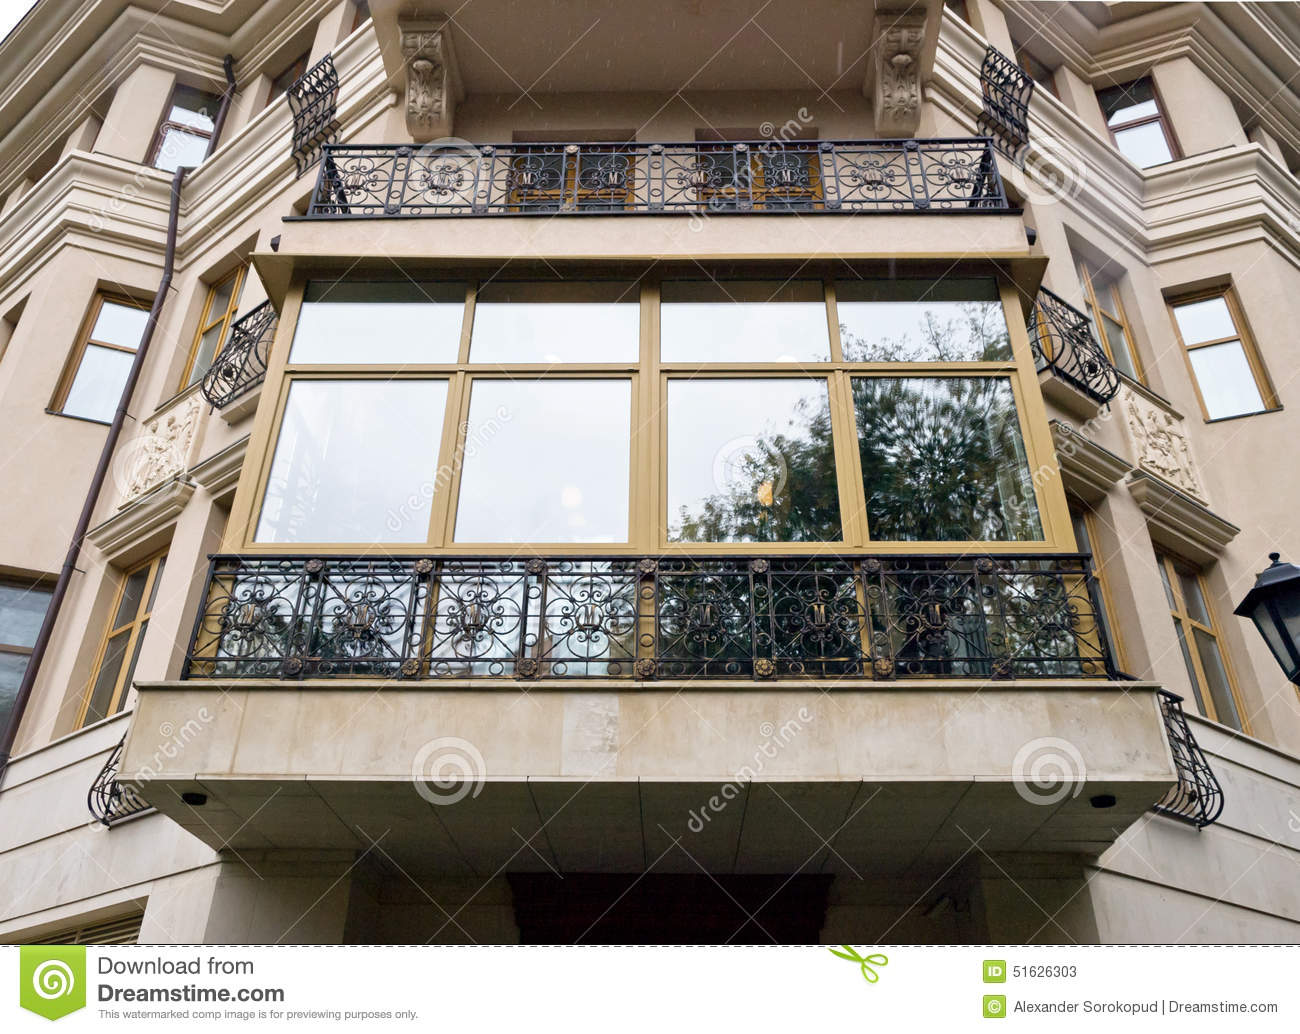 Where to order balcony glazing in Moscow 31